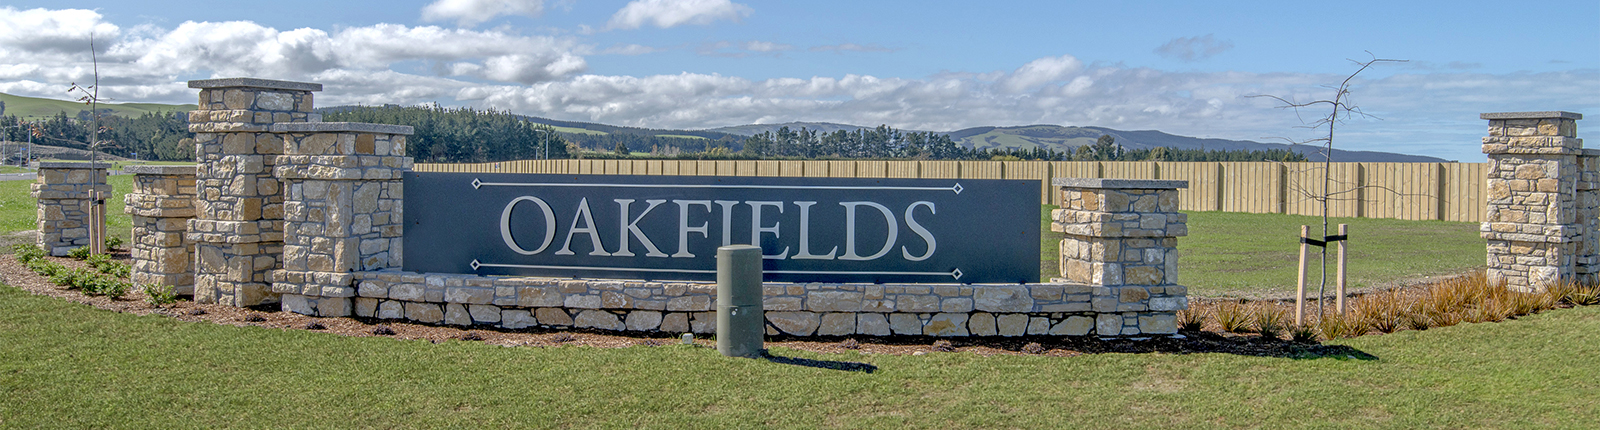 Oakfields NEW Image - 1